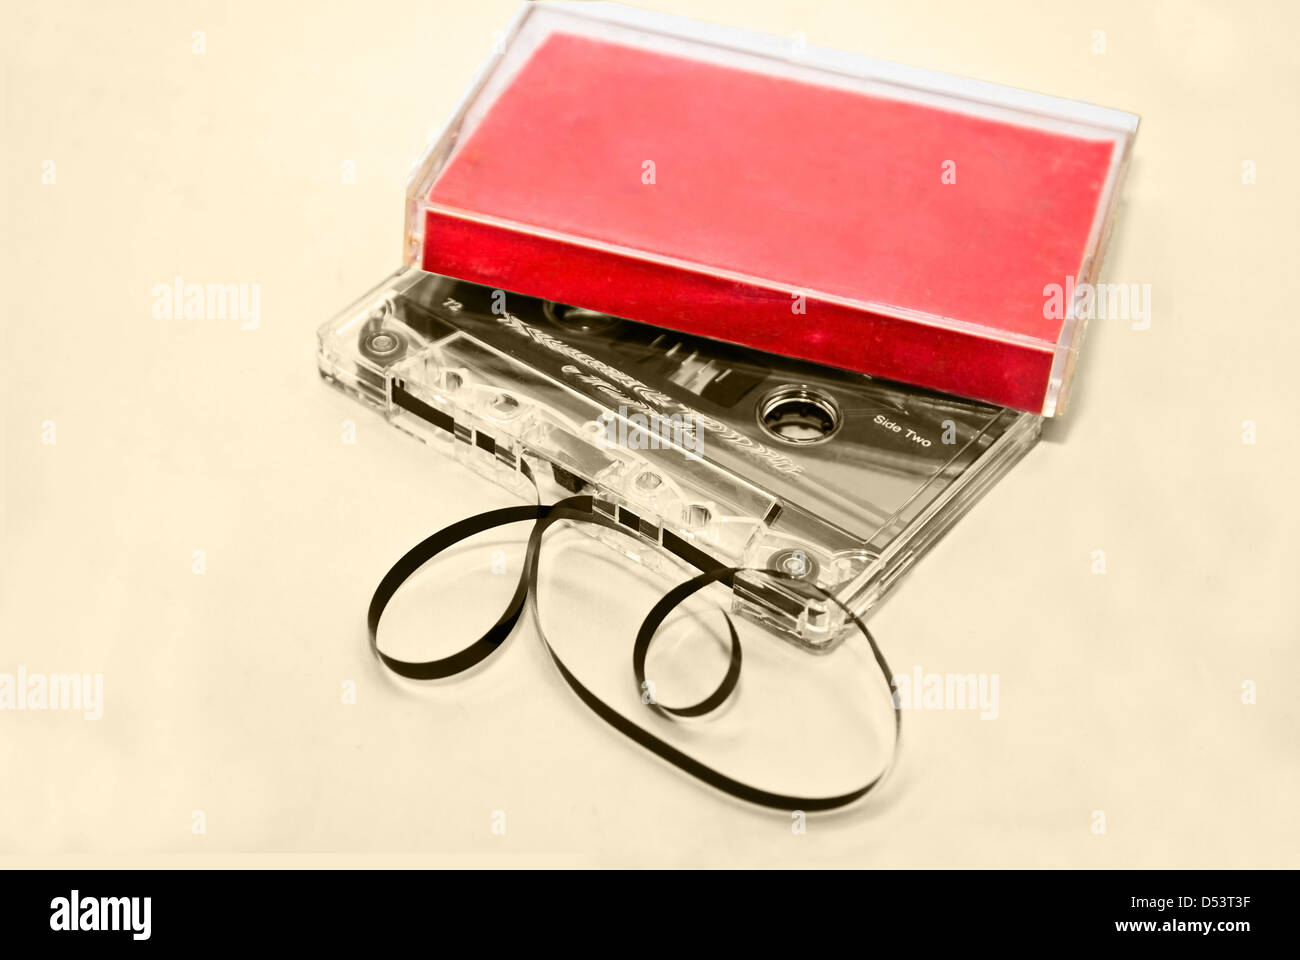 Two old cassette tapes with and without plastic cases on a sepia background. - Stock Image